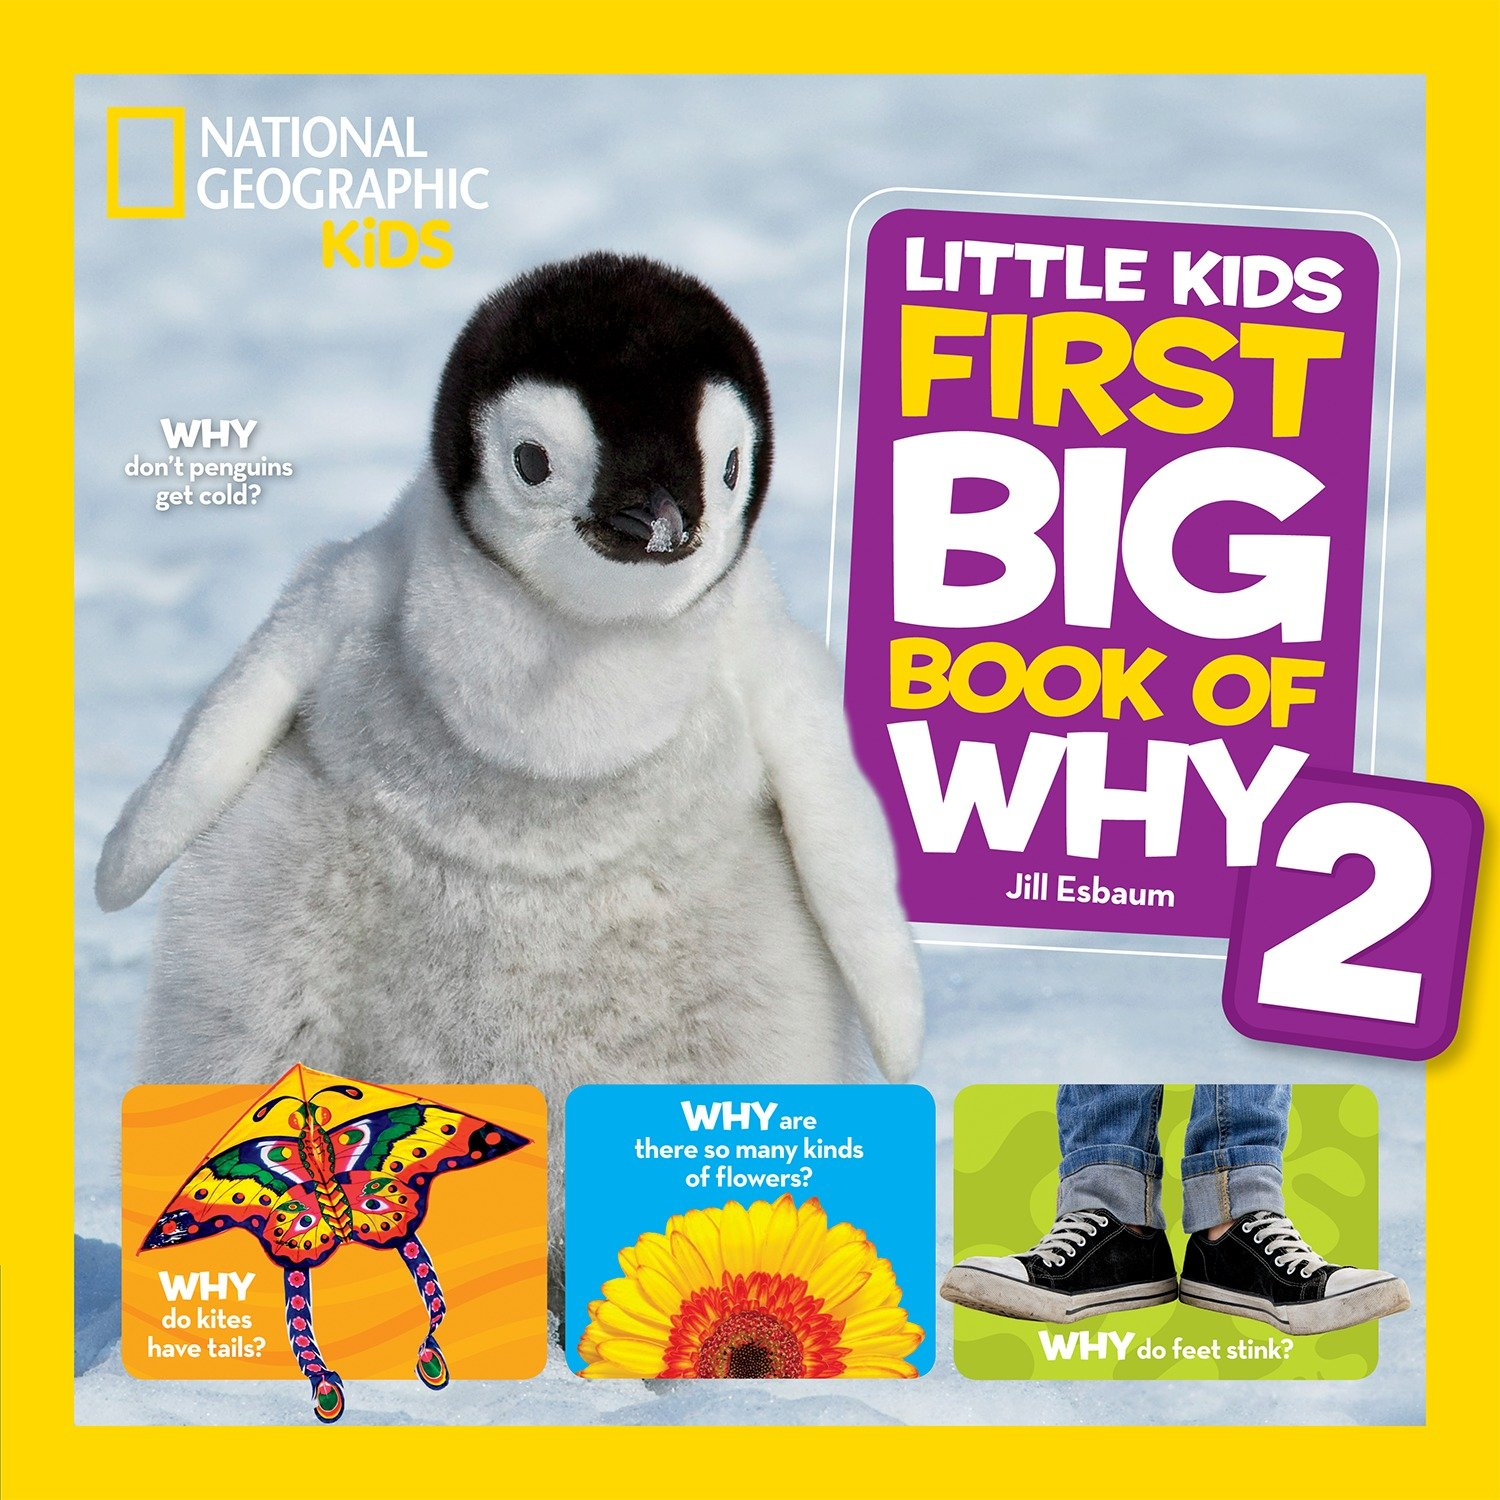 National Geographic Children's Books (March 27, 2018)